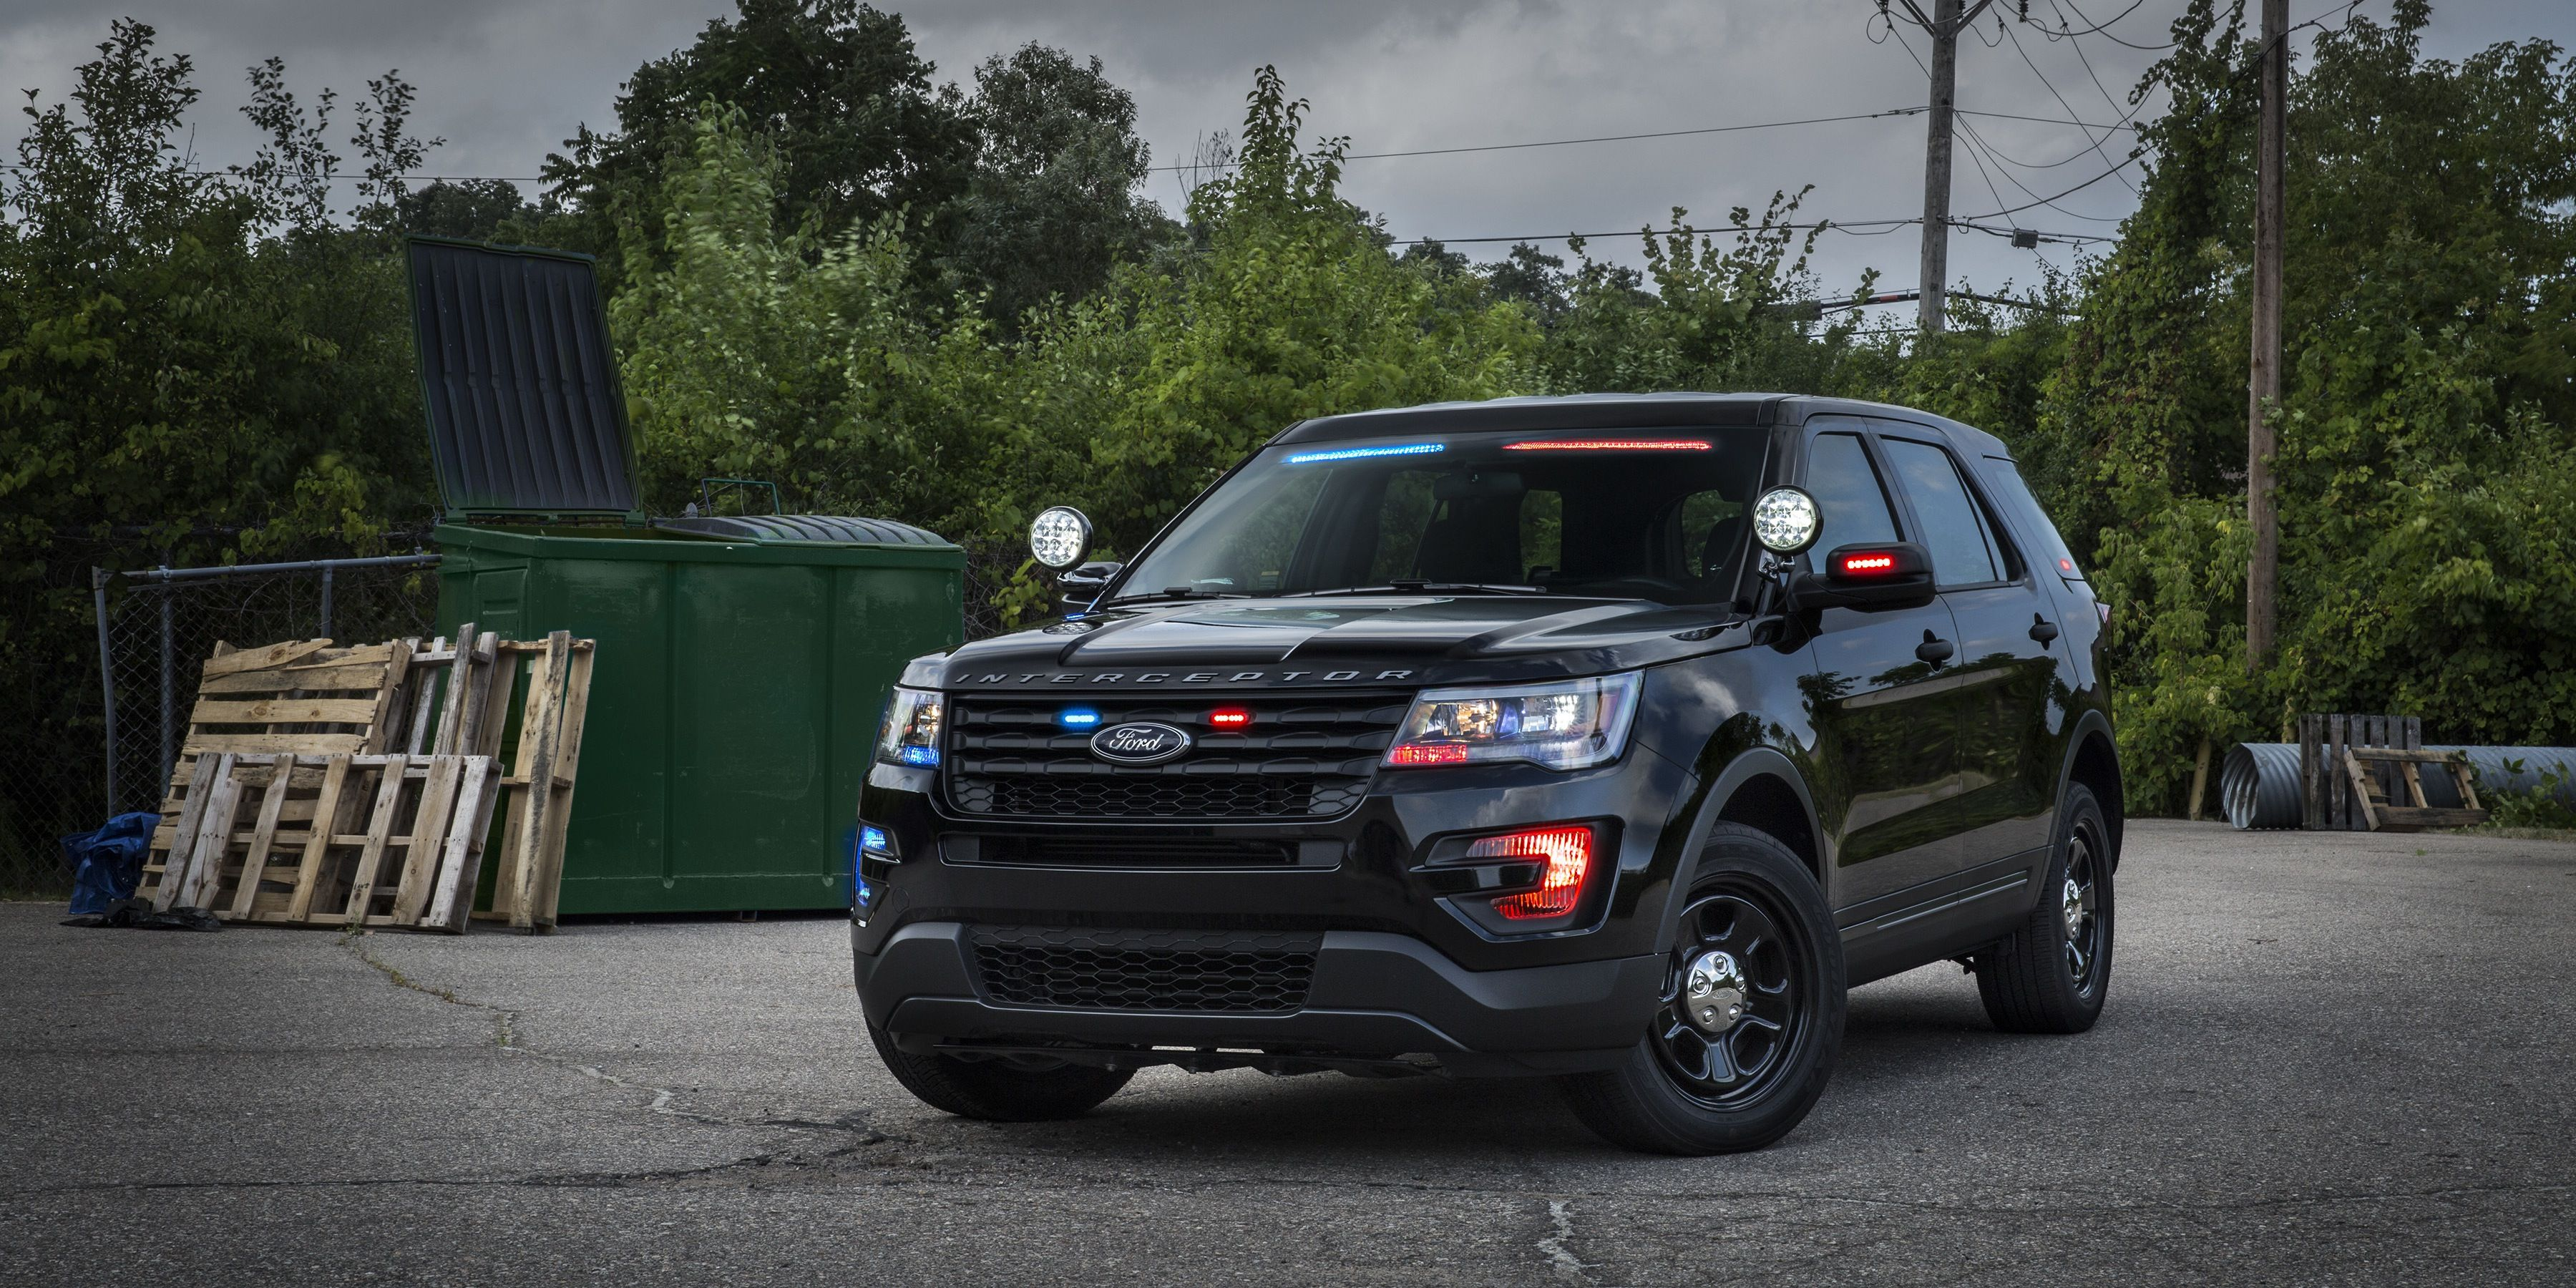 This Sneaky Ford Cop Suv Will Catch You Speeding Ford Police Police Cars Police